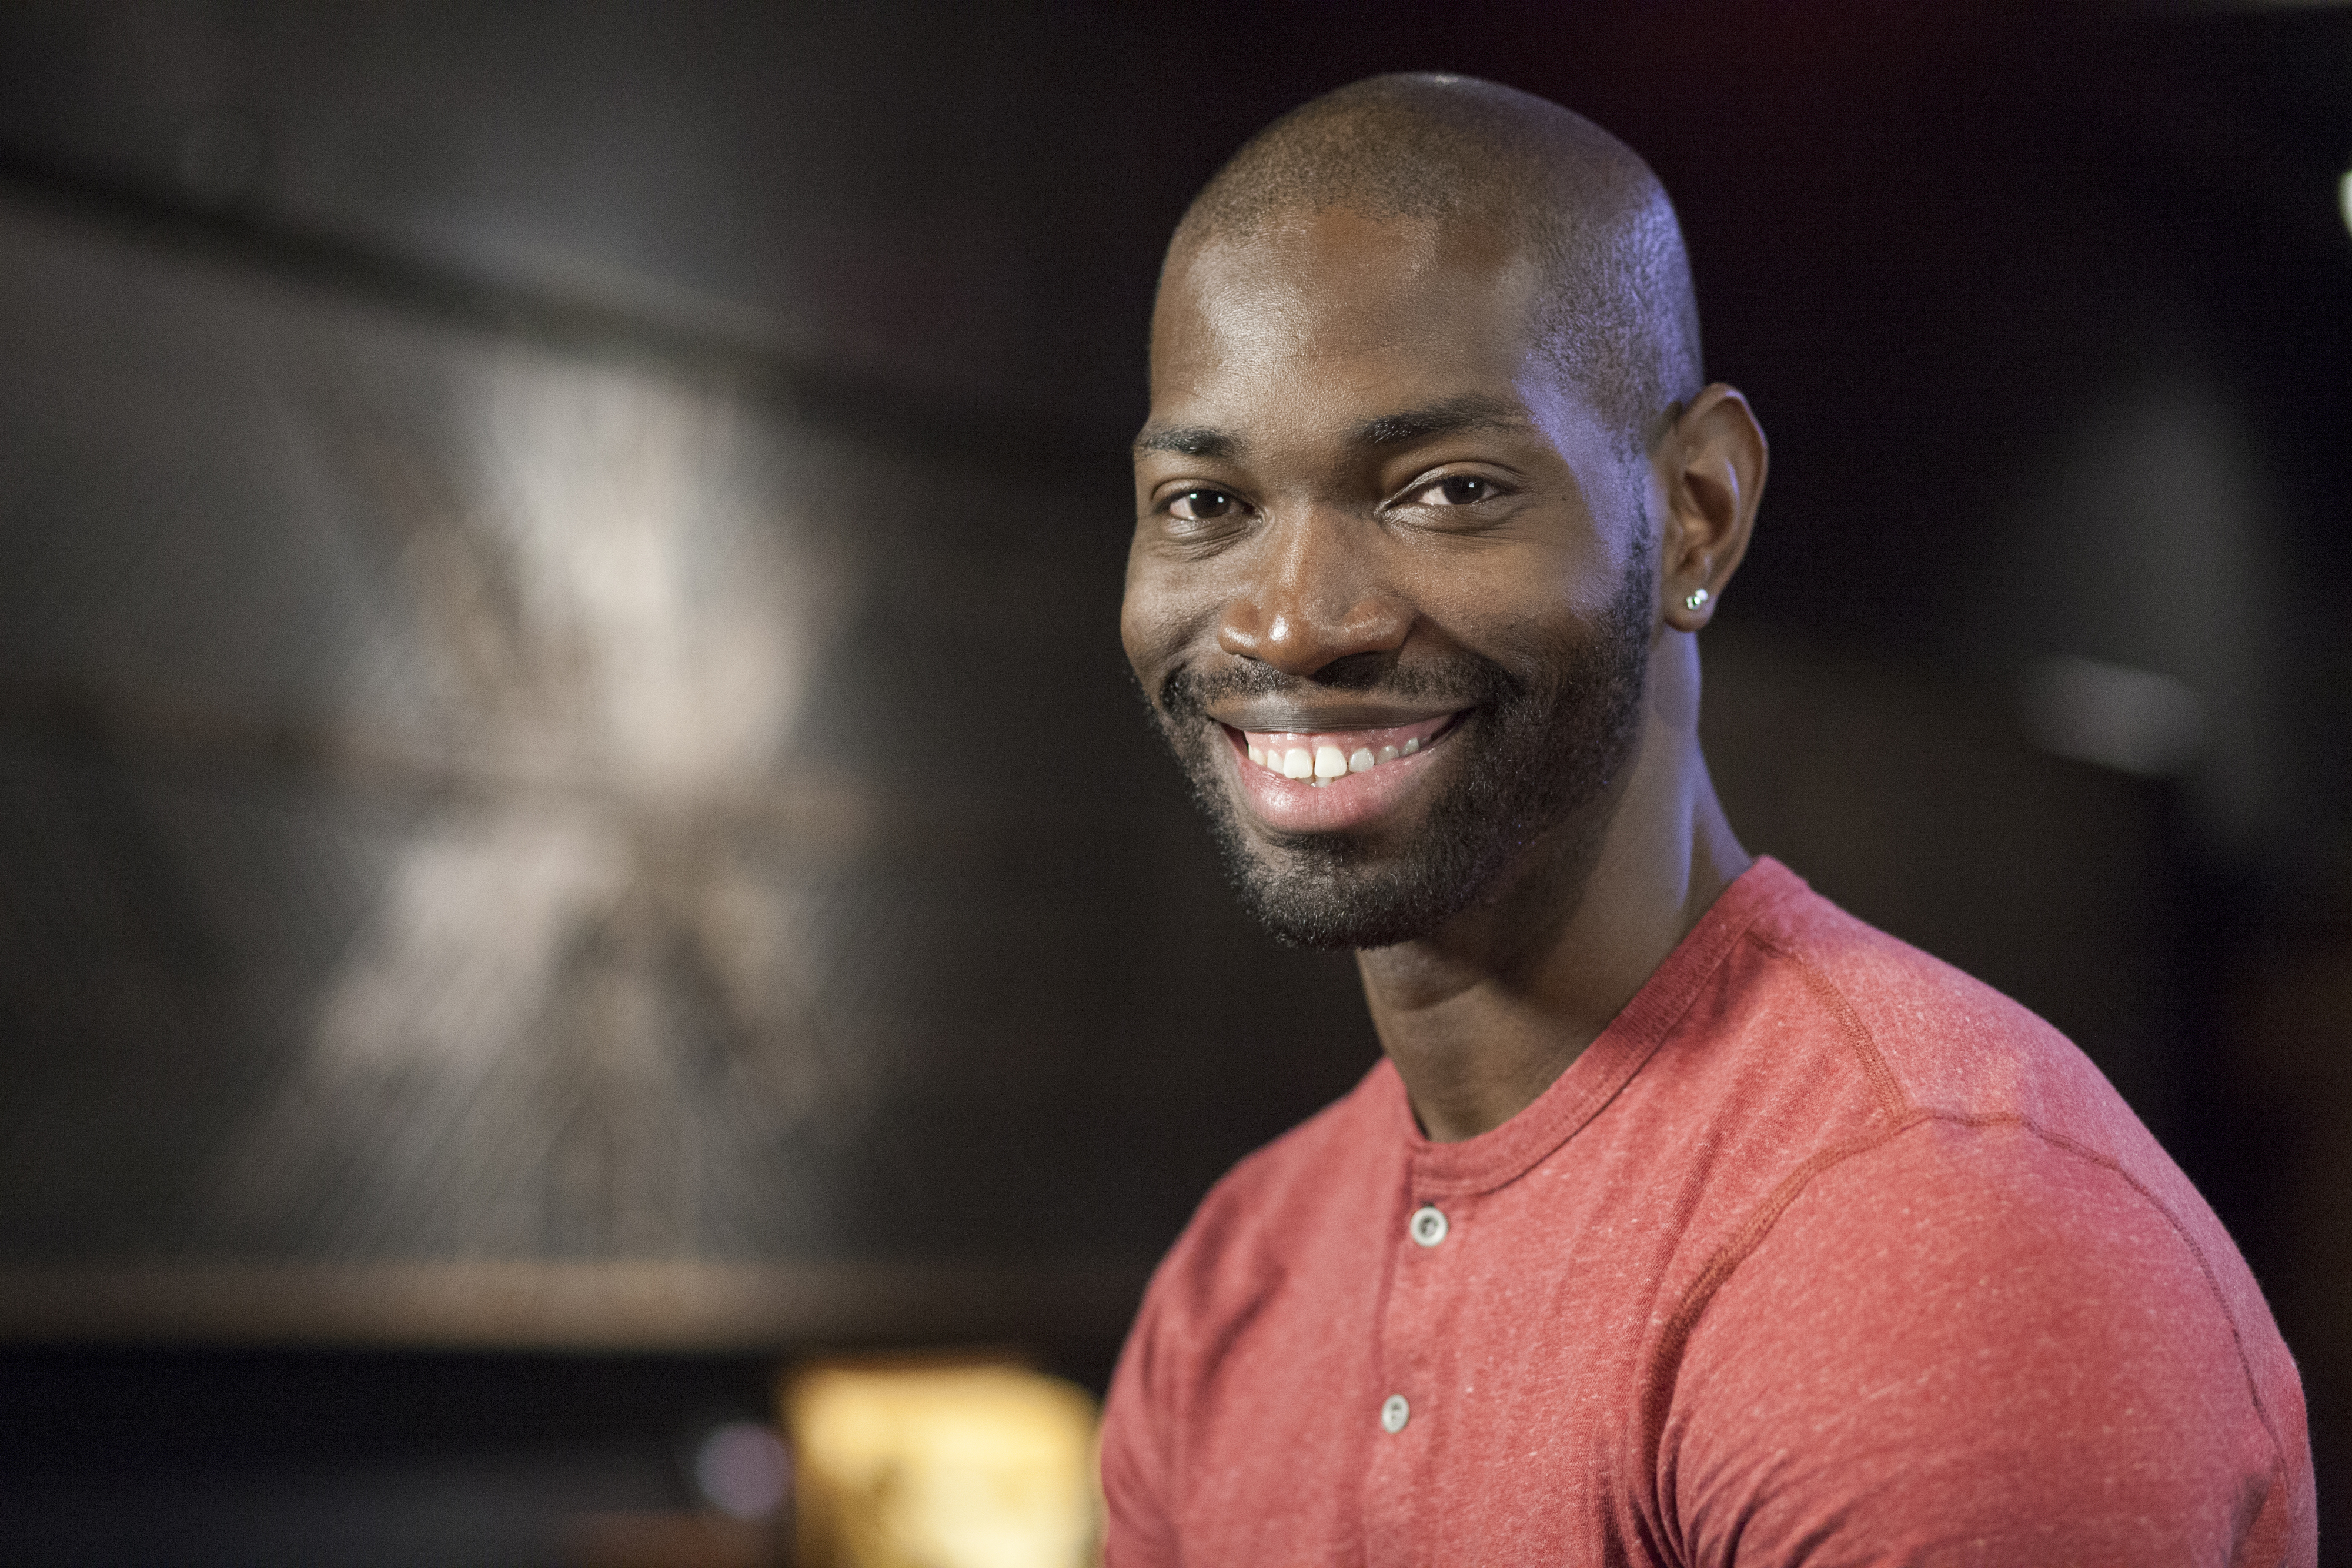 """The man with the million-dollar smile is playwright Tarell McCraney, shown here in his official portrait as a MacArthur Foundation """"Genius Grant"""" winner. """"Wig Out!"""" is one of the plays that helped earn him the award."""